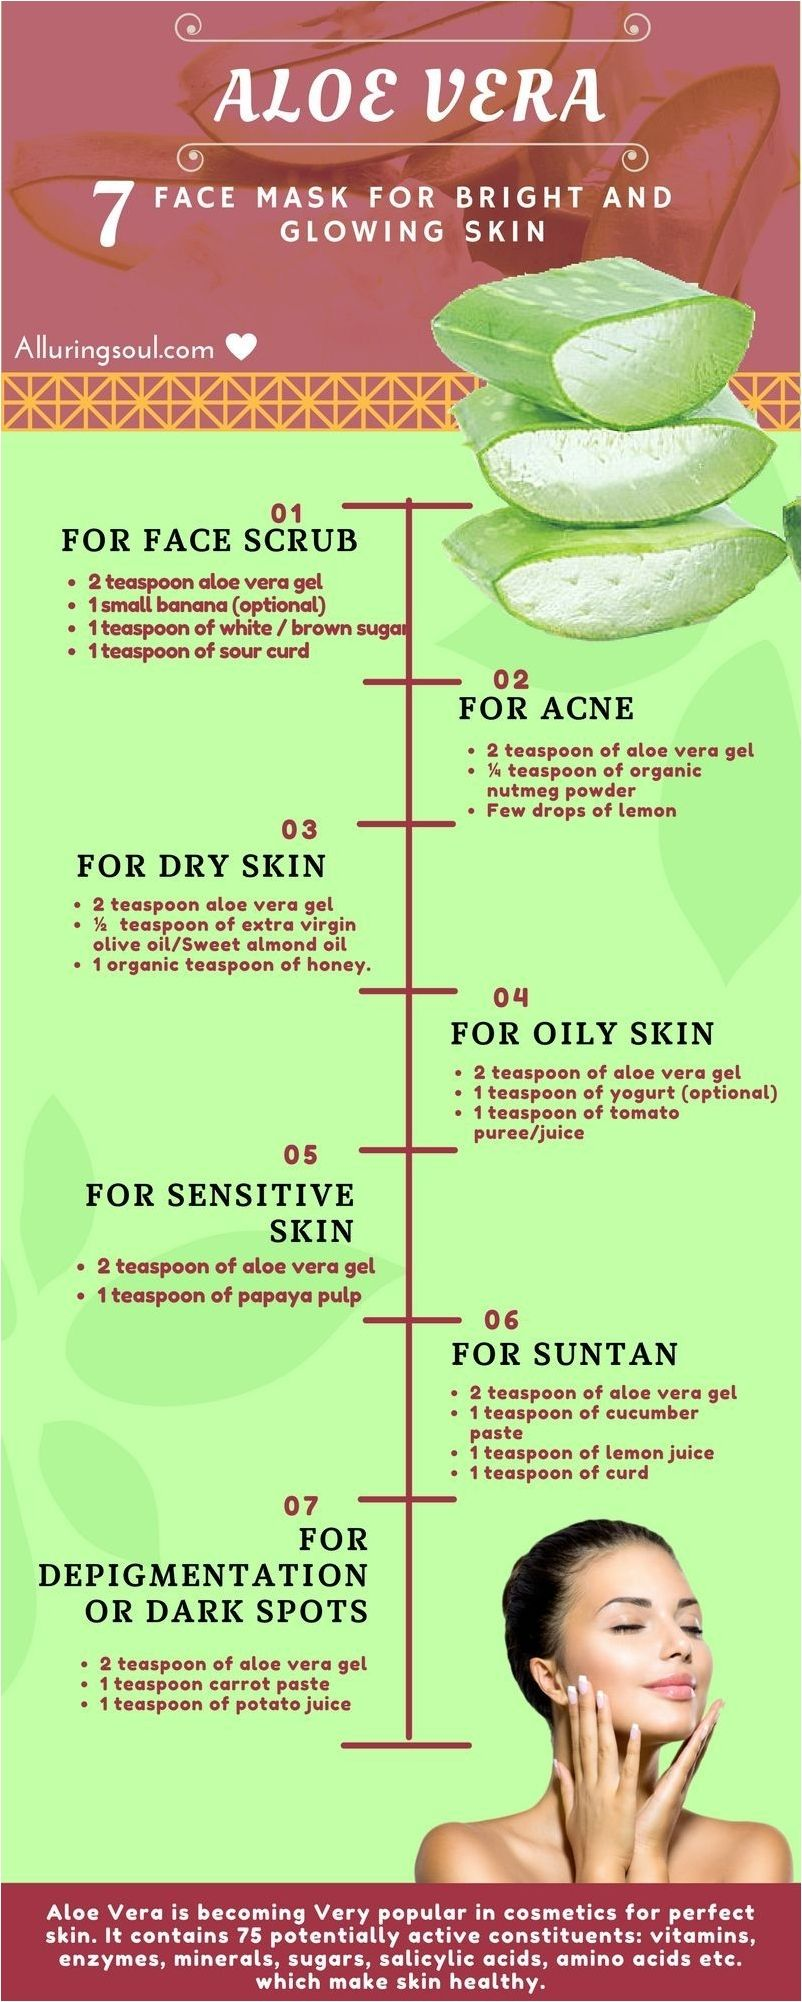 Natural Skin Care Care For Your Skin The Natural Way With 100 All Natural Beauty Care Treatments As Well As N Aloe Vera Gel Face Gel Face Mask Skin Face Mask